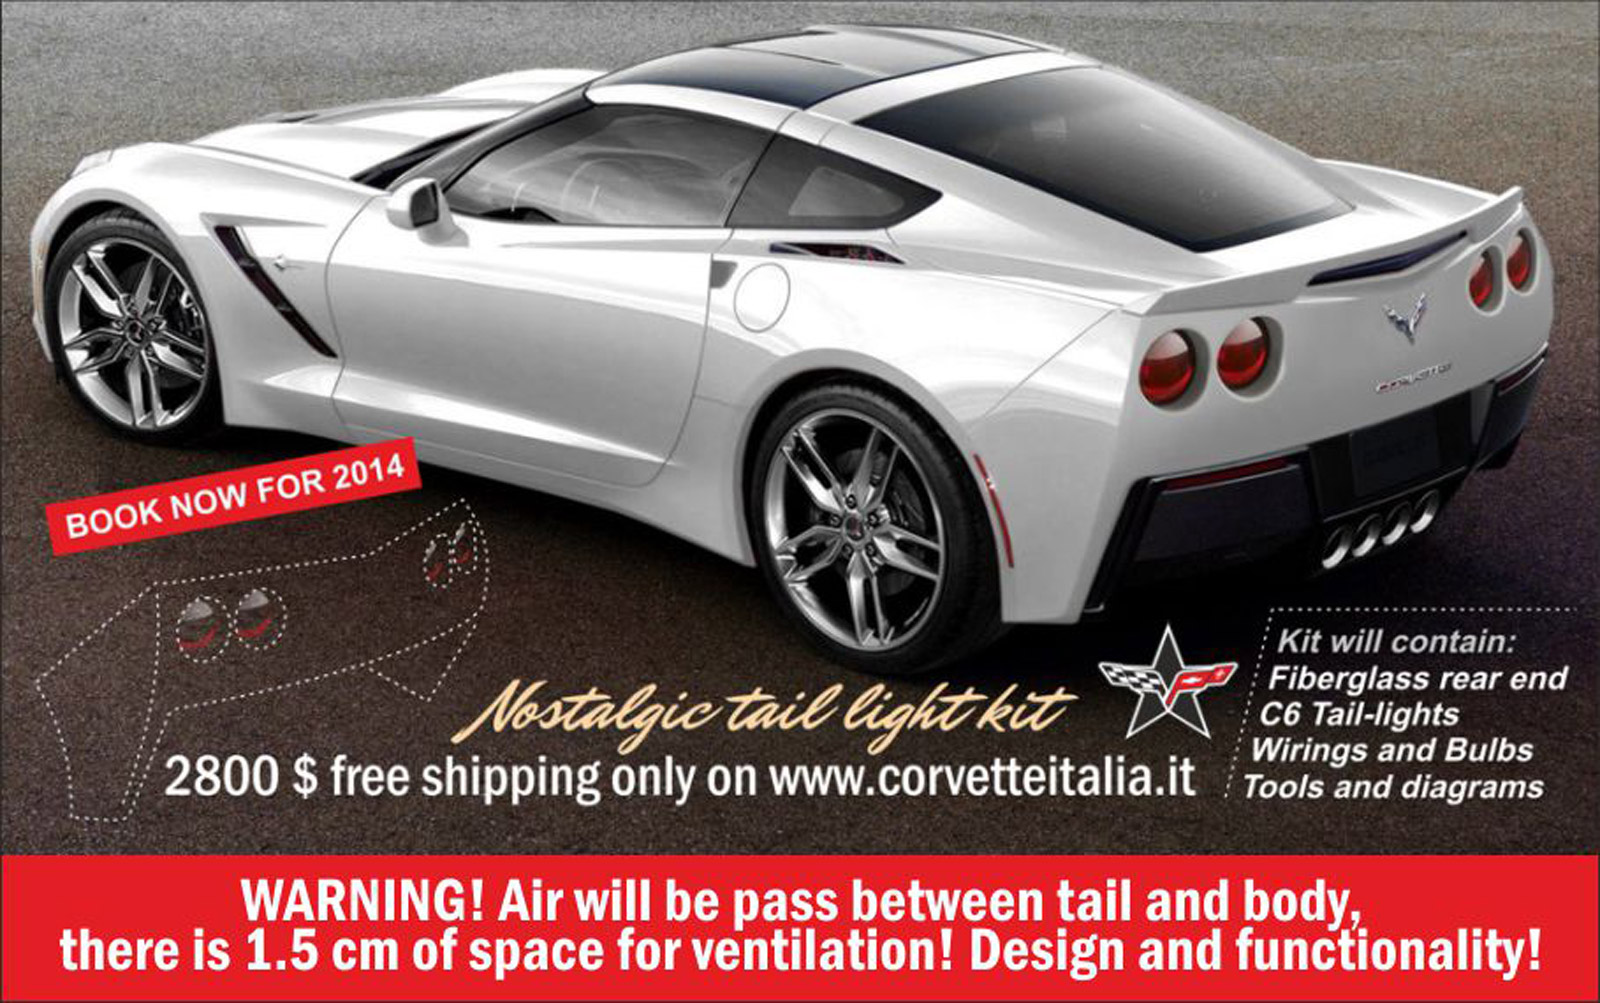 Fans Design Round Tail Light Kit For 2014 Chevrolet Corvette